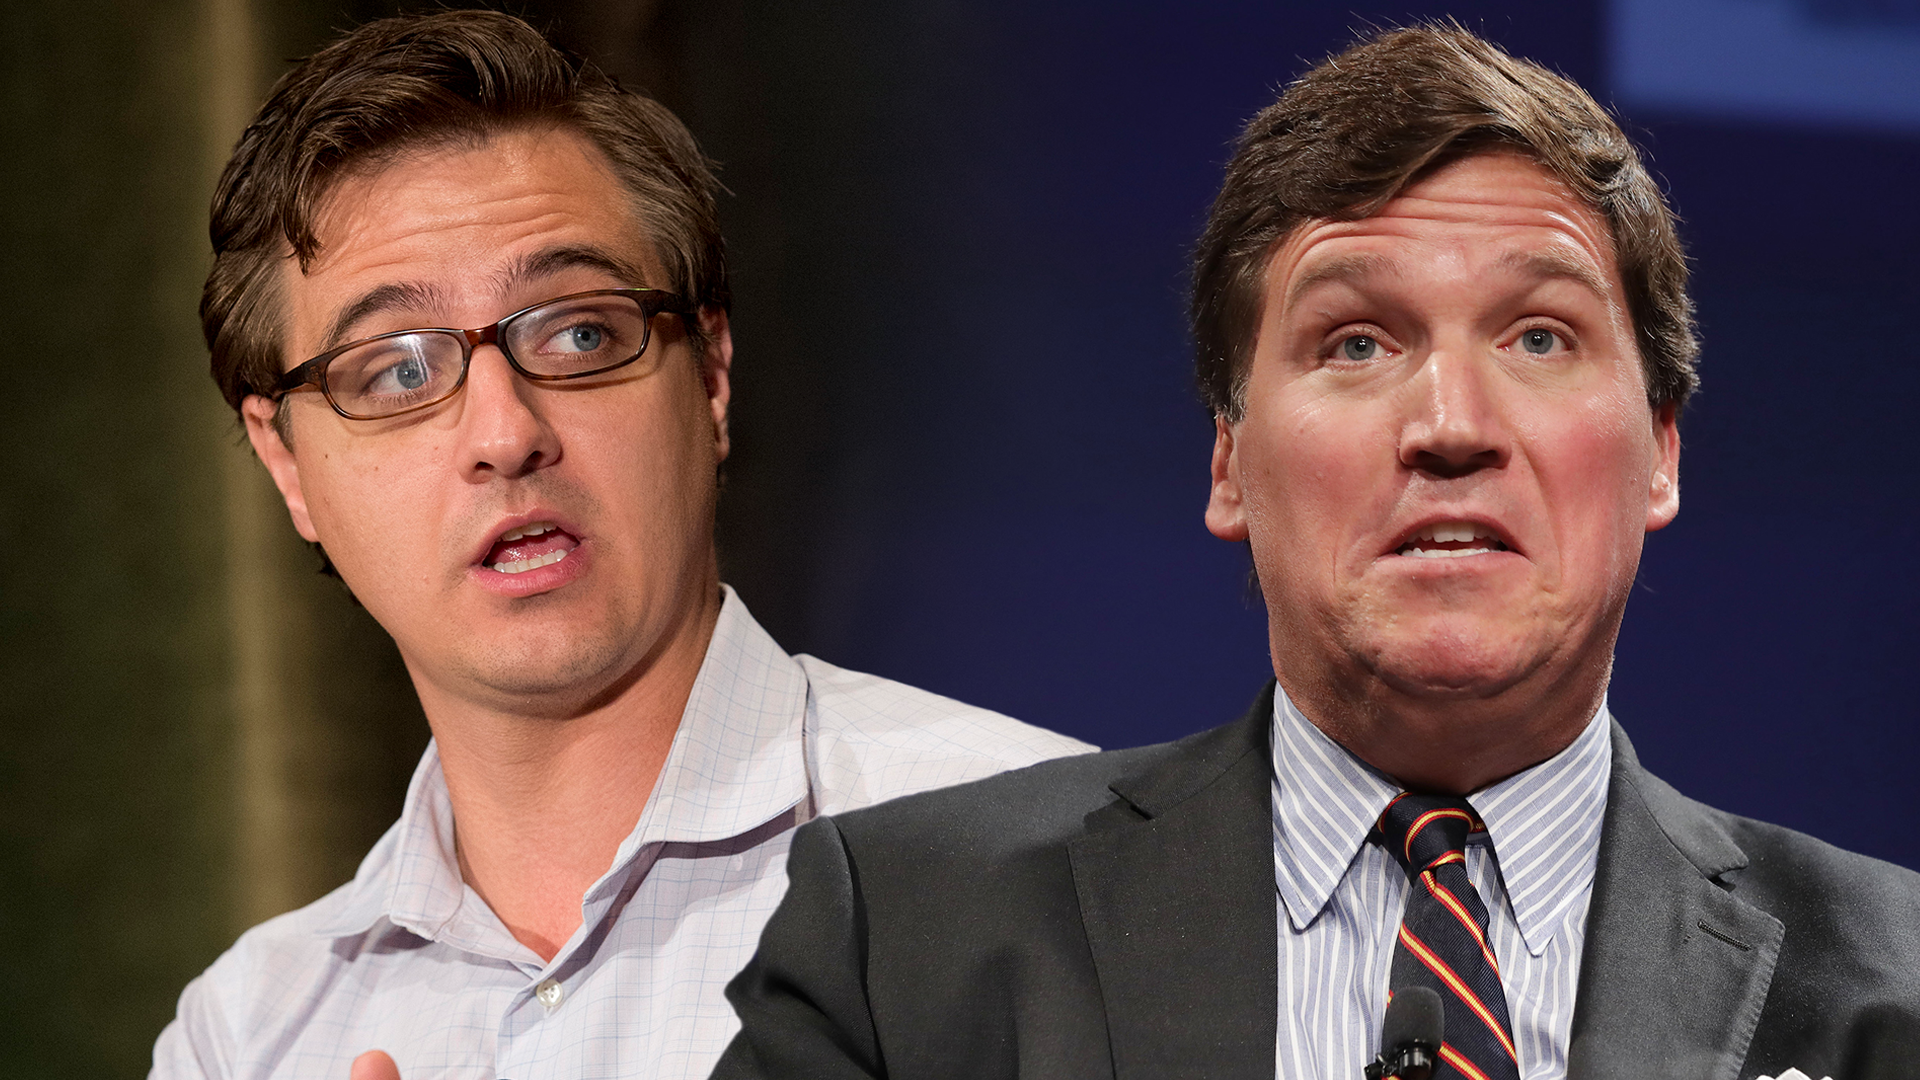 Chris Hayes challenges Tucker Carlson to resign over Fox News's vaccine mandate